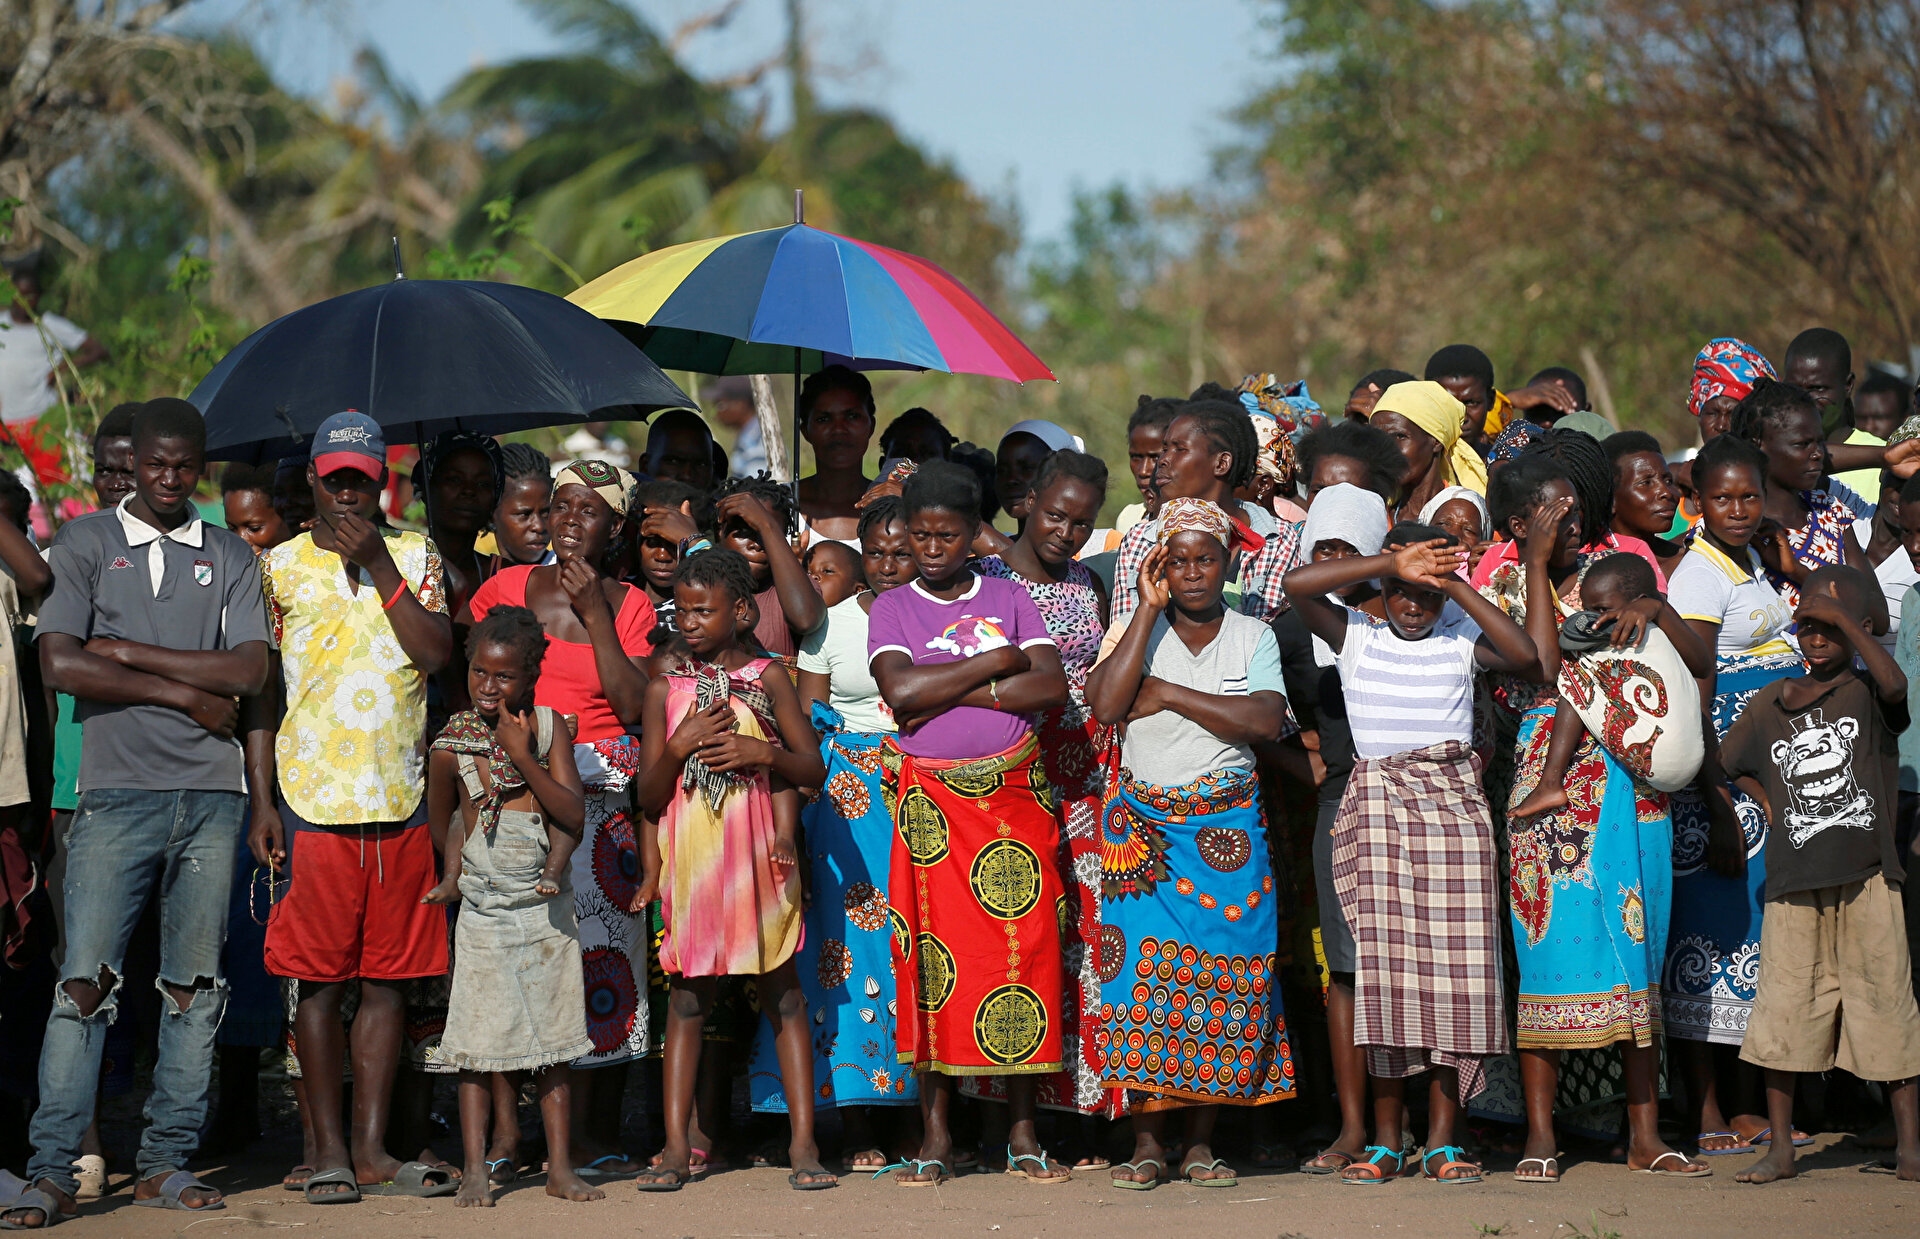 People wait for food aid in the aftermath of Cyclone Idai